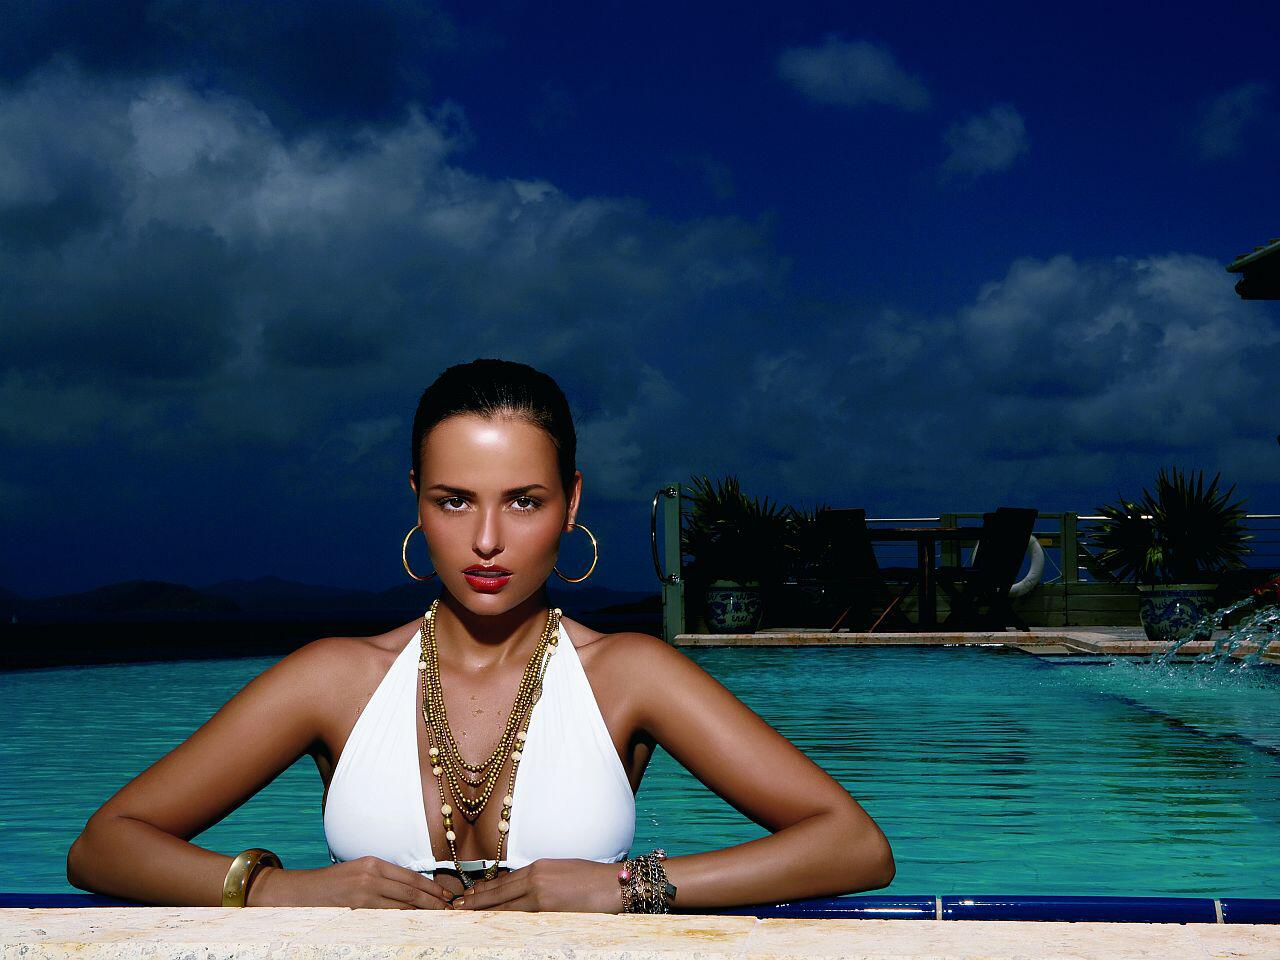 Bild zu Tuning-Kalender 2010: Martina Ivezaj auf den British Virgin Islands